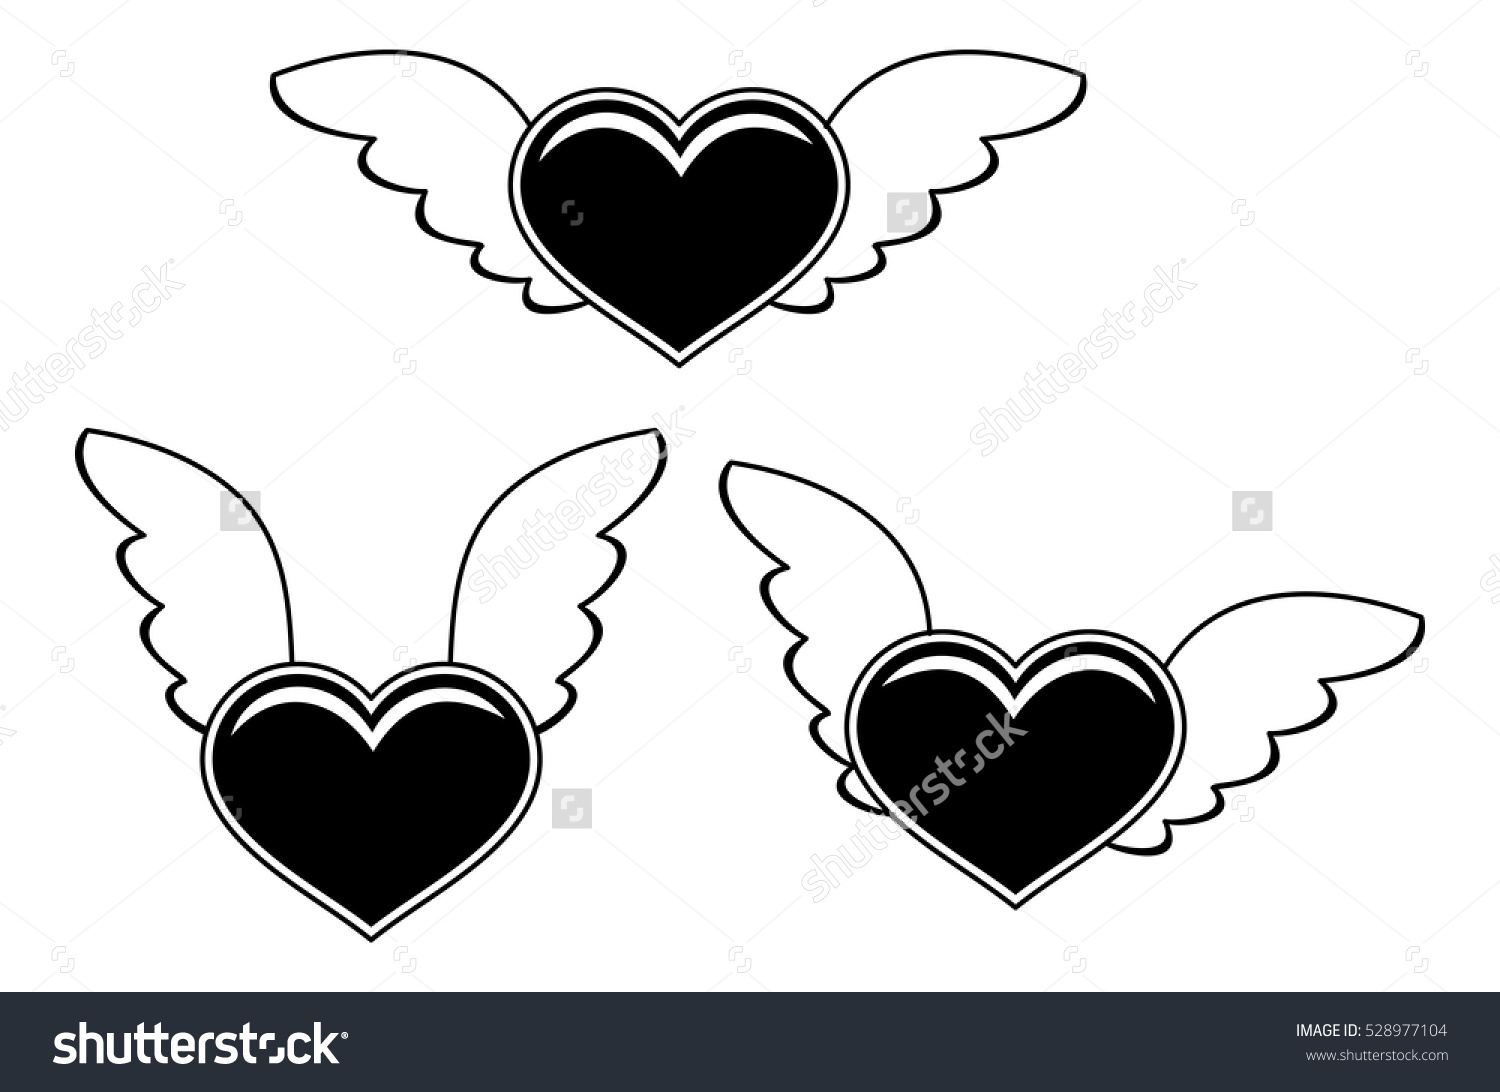 Black White Silhouette Flying Heart Vector Stock Vector 528977104.